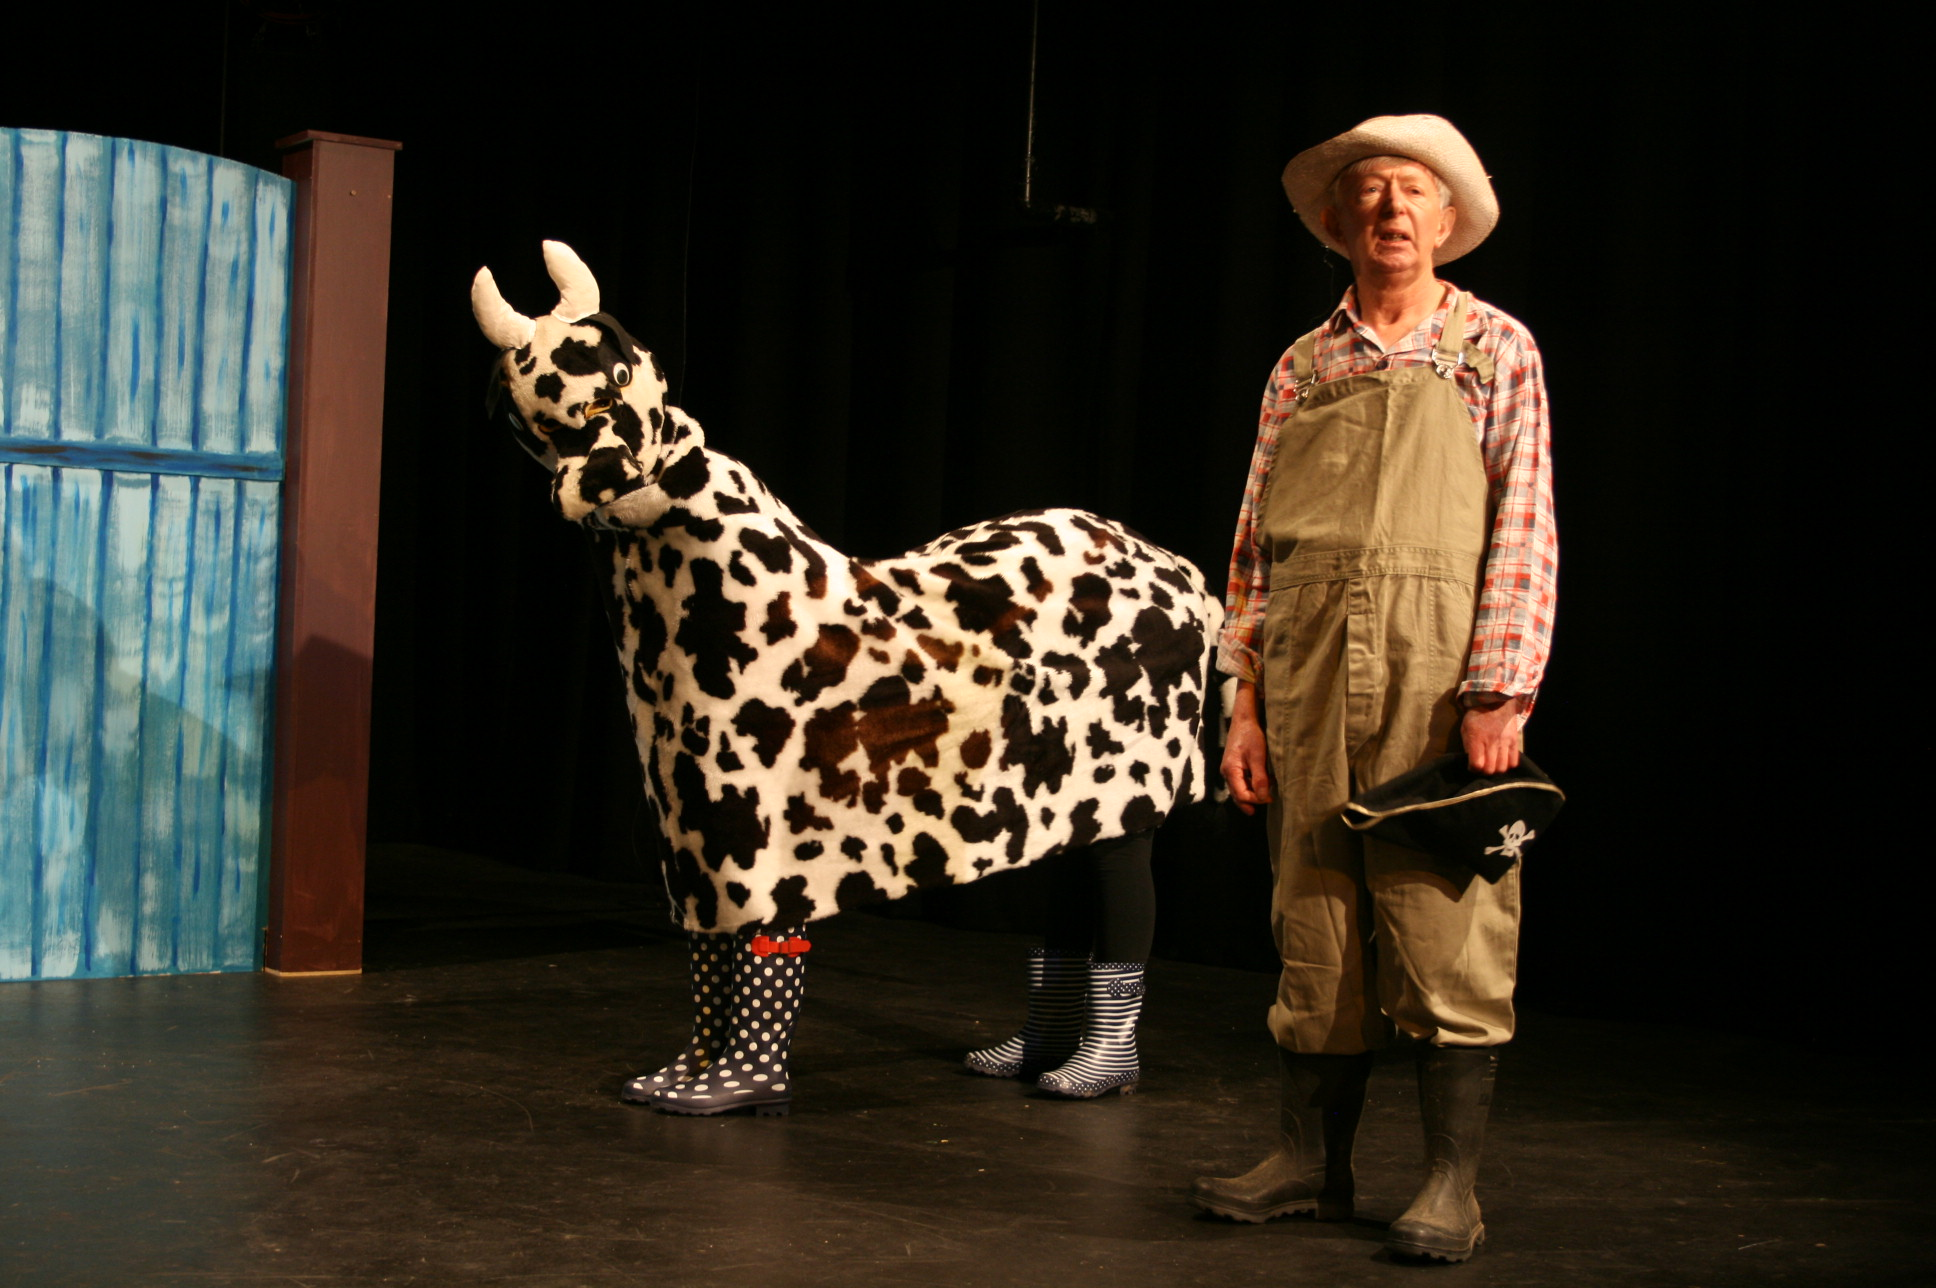 A farmer and his cow